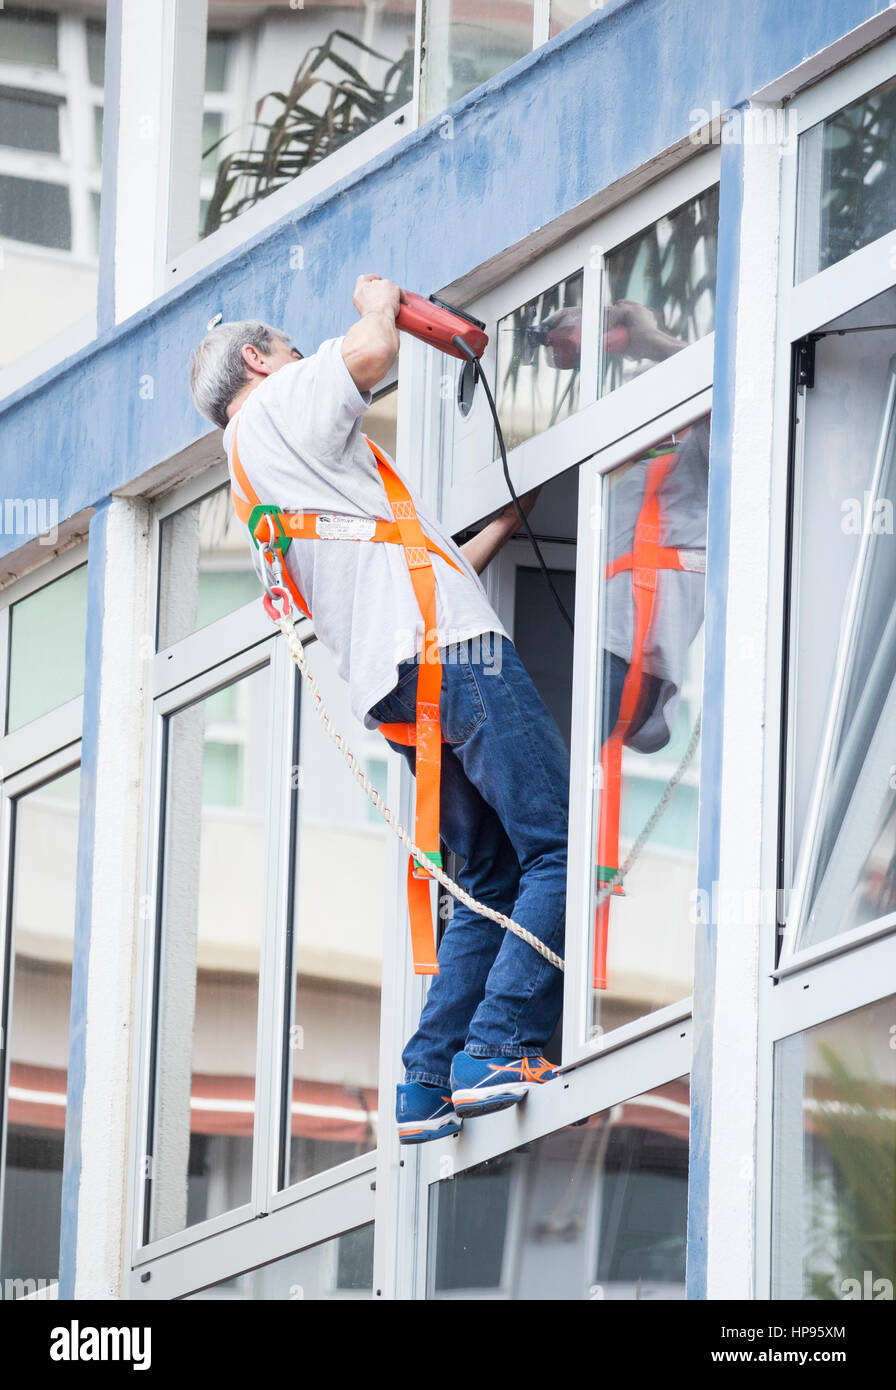 Man using power tool balancing precariously on window ledge. - Stock Image